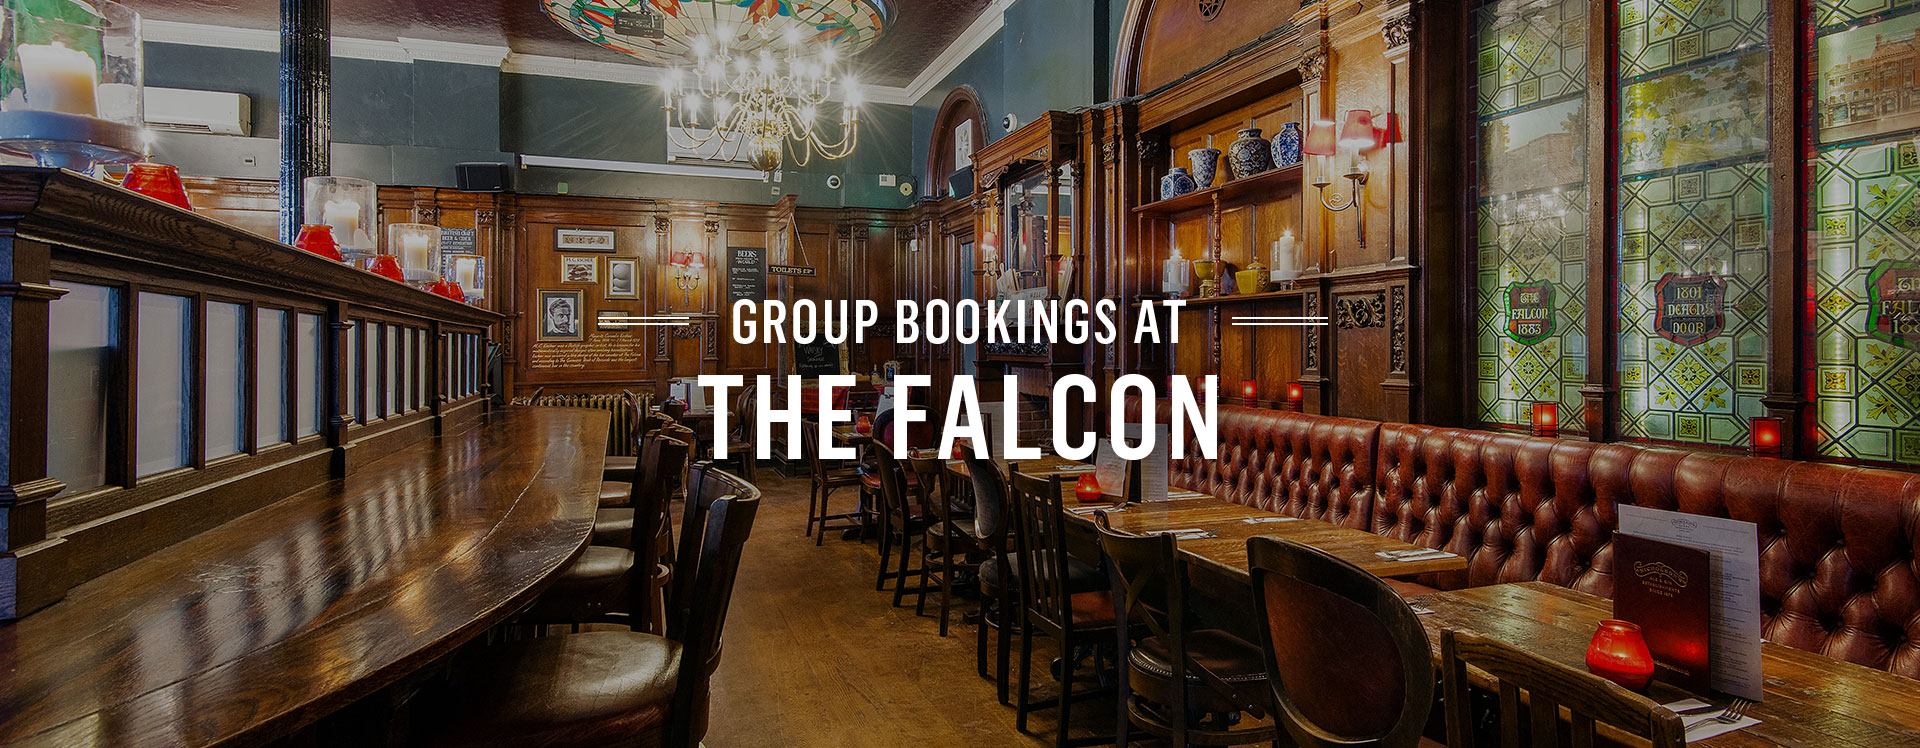 Group Bookings at The Falcon